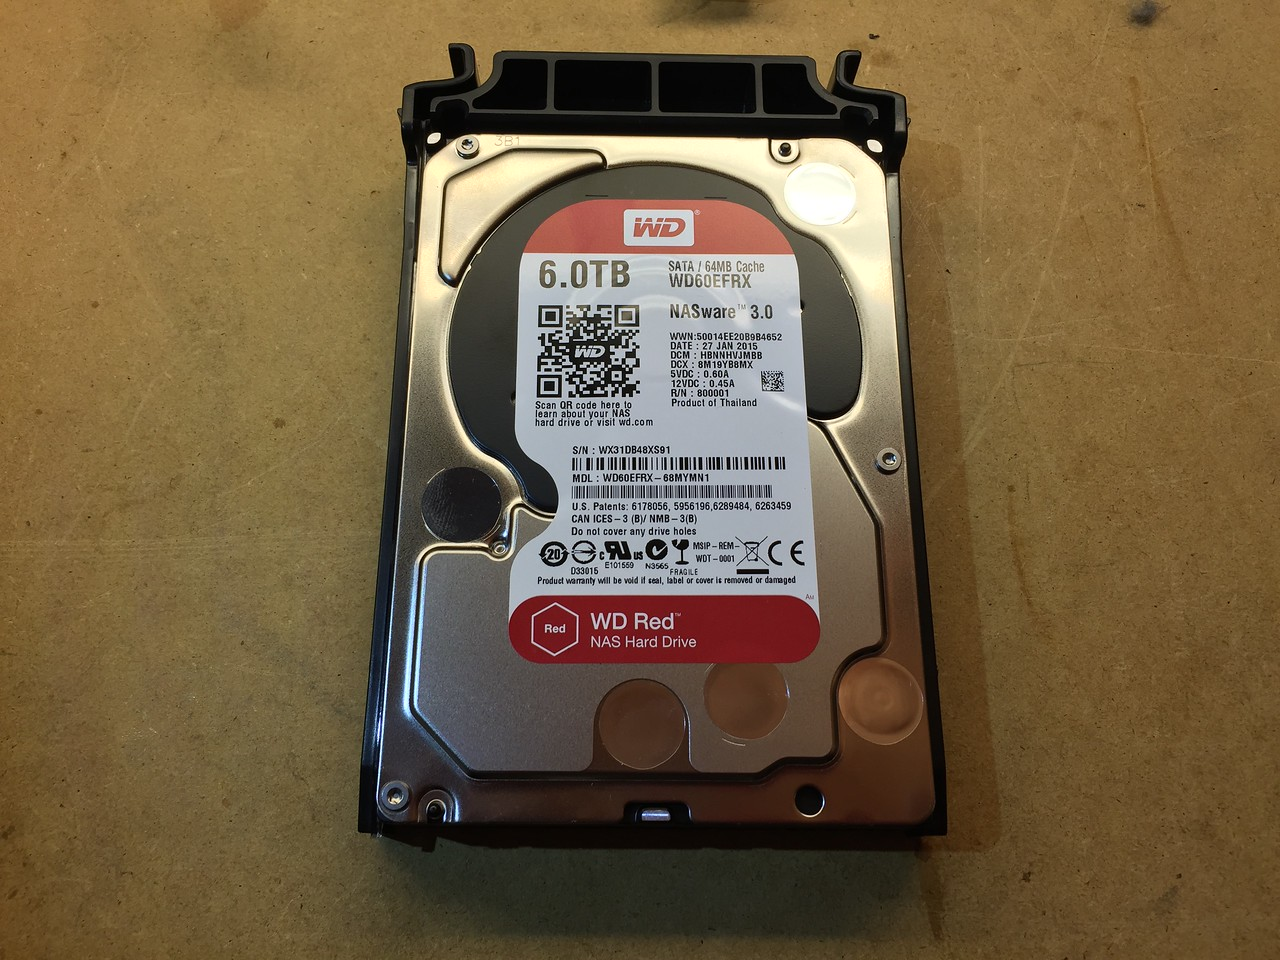 Upgrading the first of the 3TB drives to 6TB